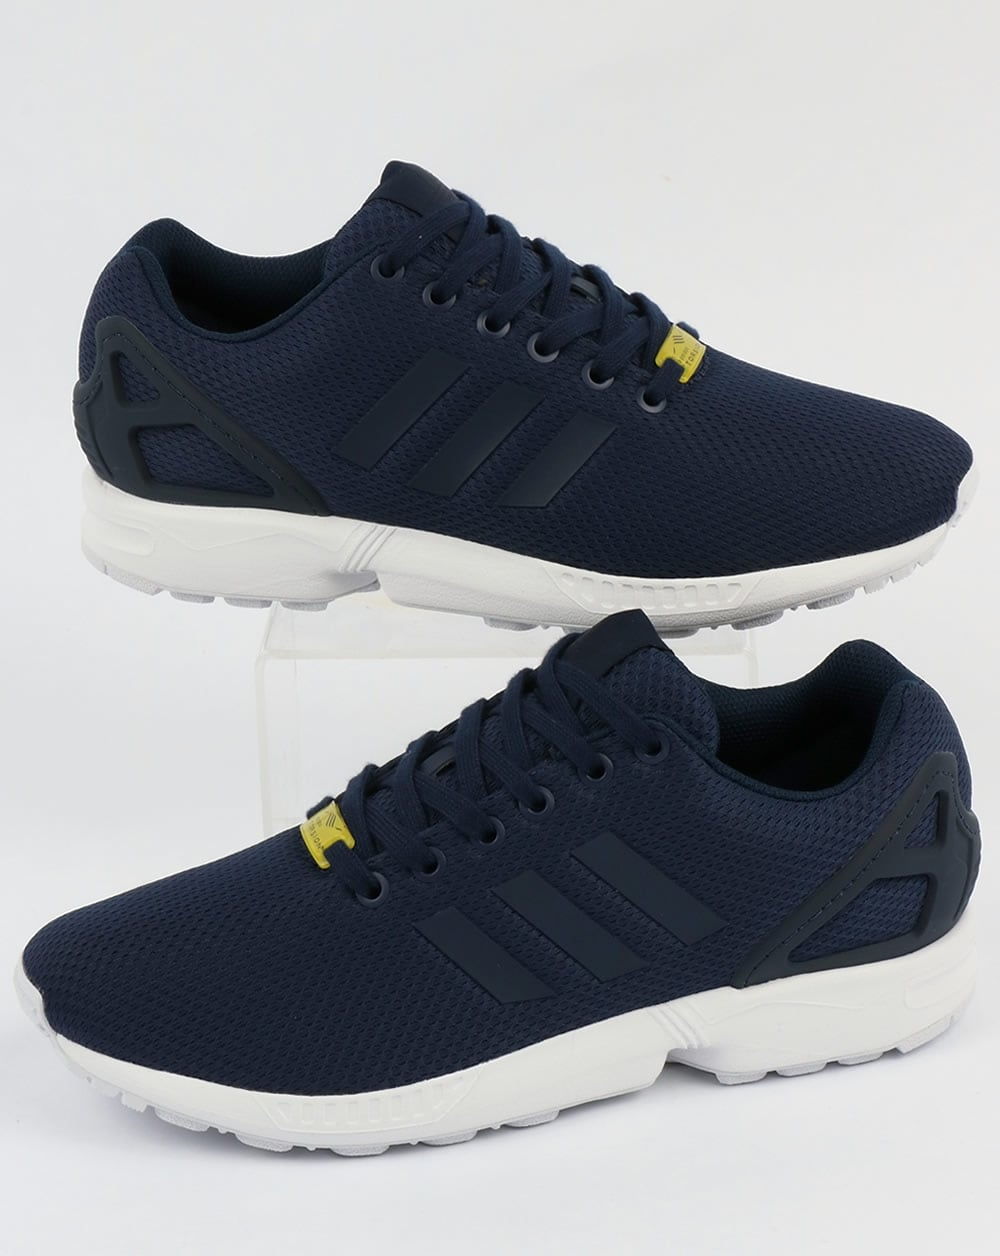 quality design d9e4e 41b46 Adidas ZX Flux Trainers New Navy/White